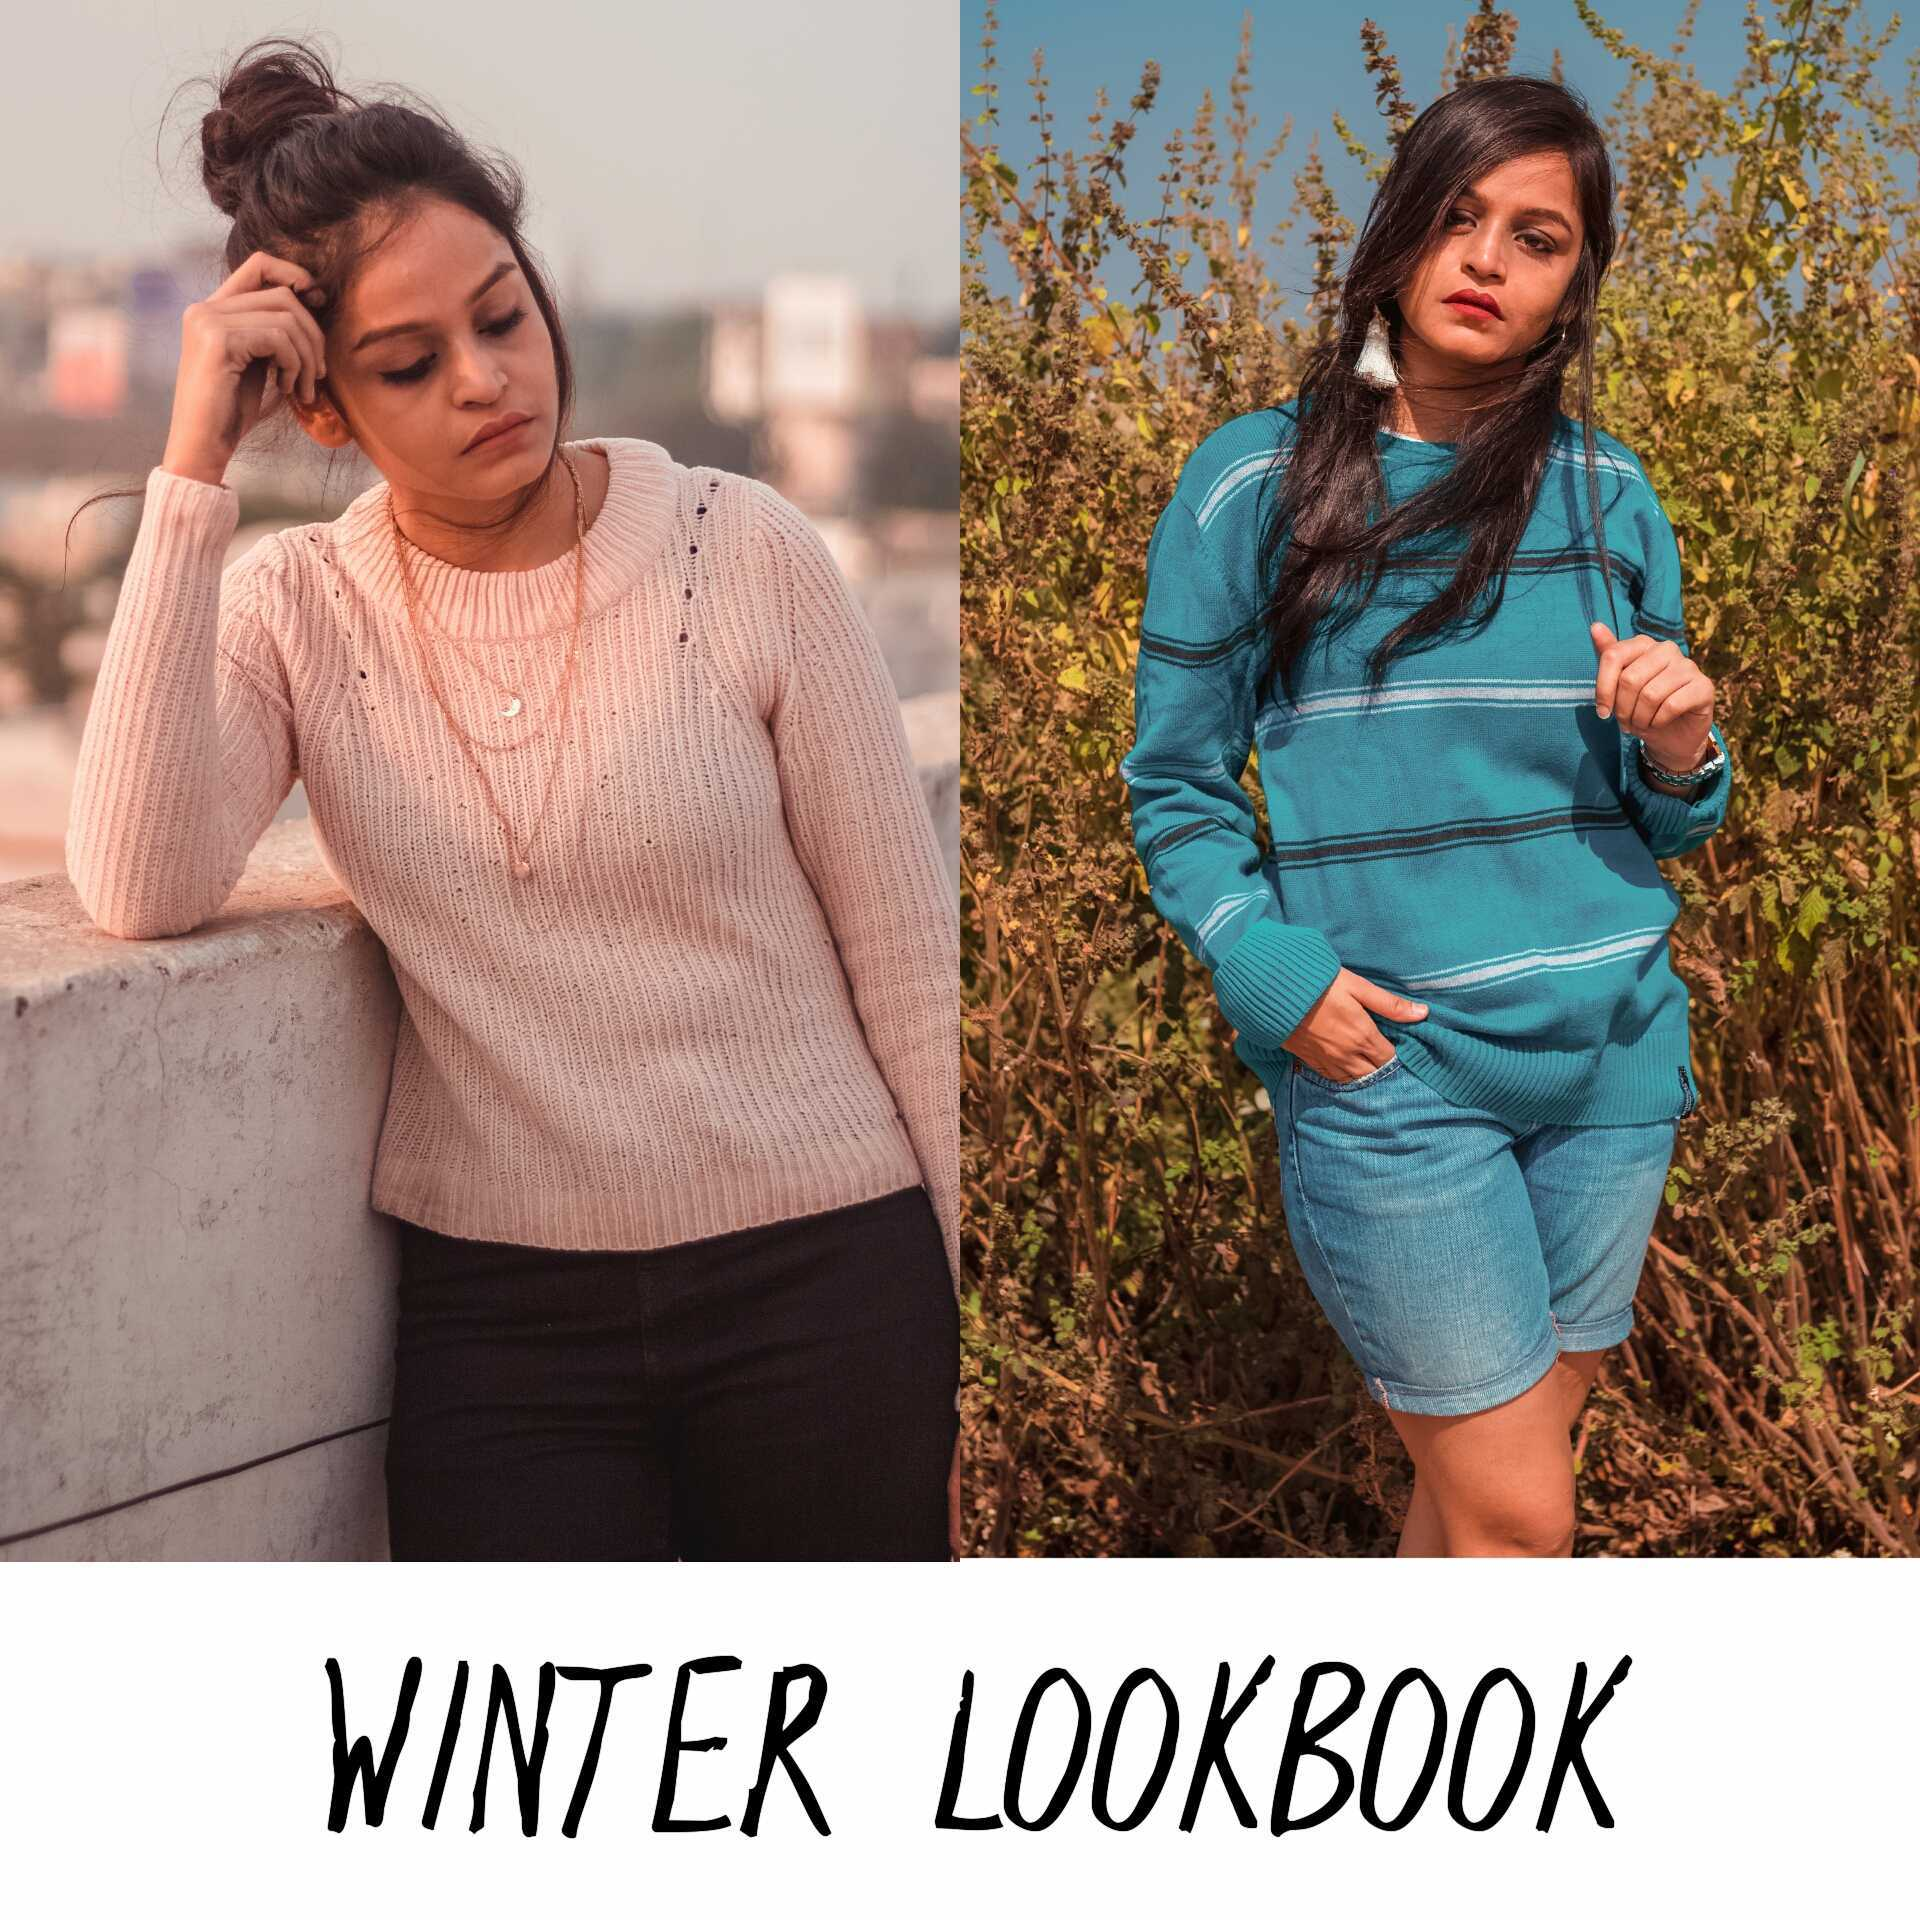 Winter Lookbook image